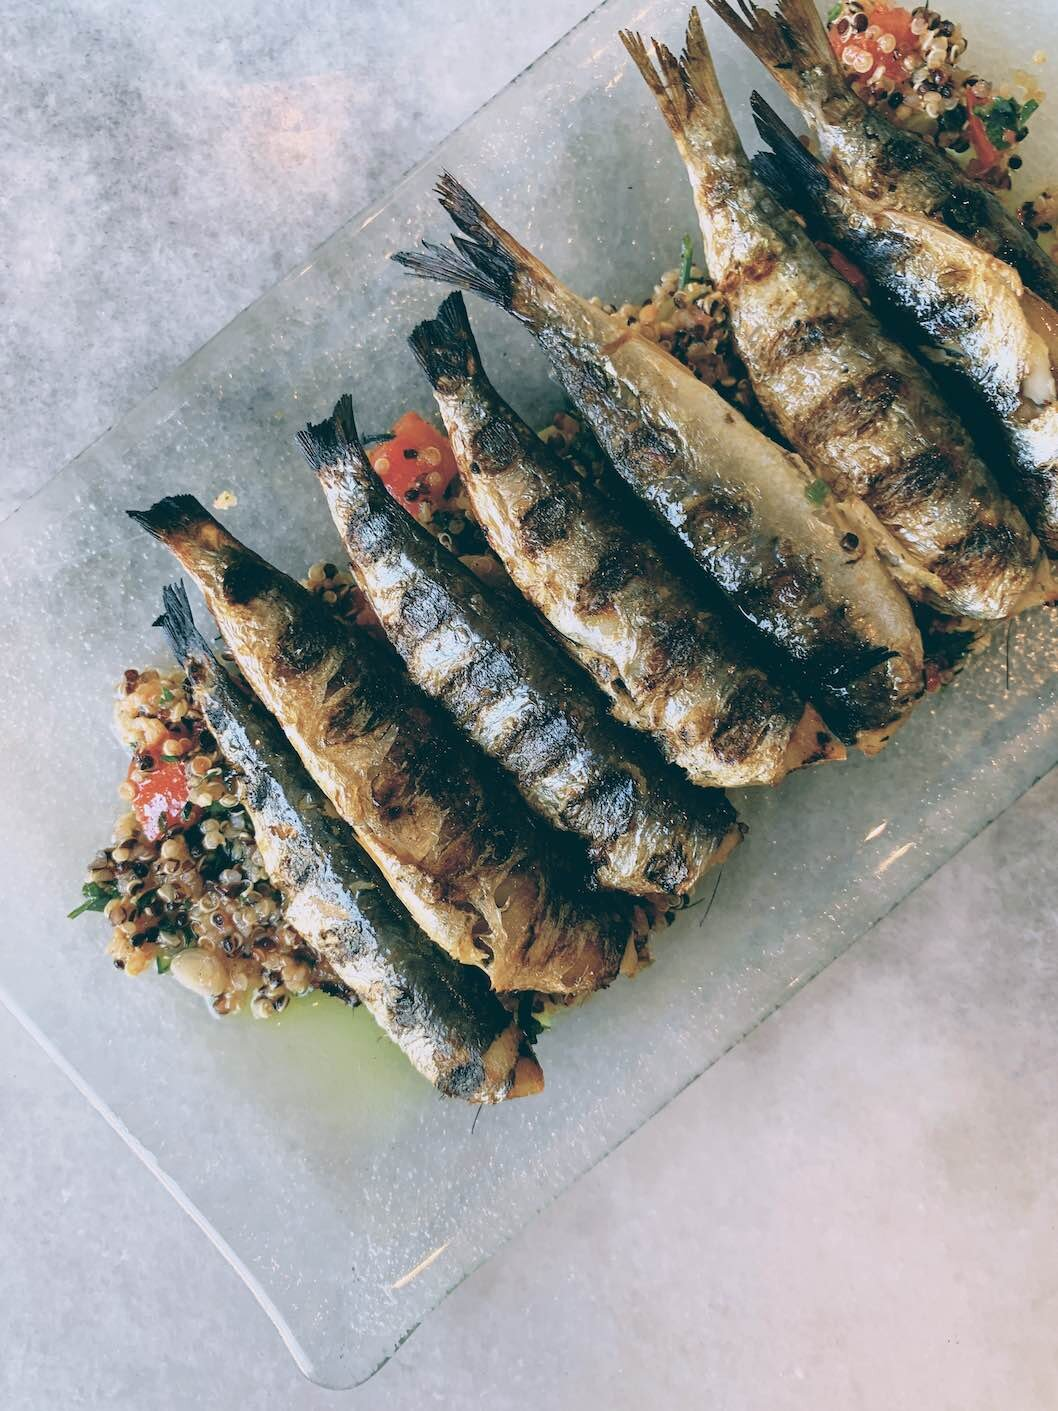 Grilled sardines on a bed of quinoa salad